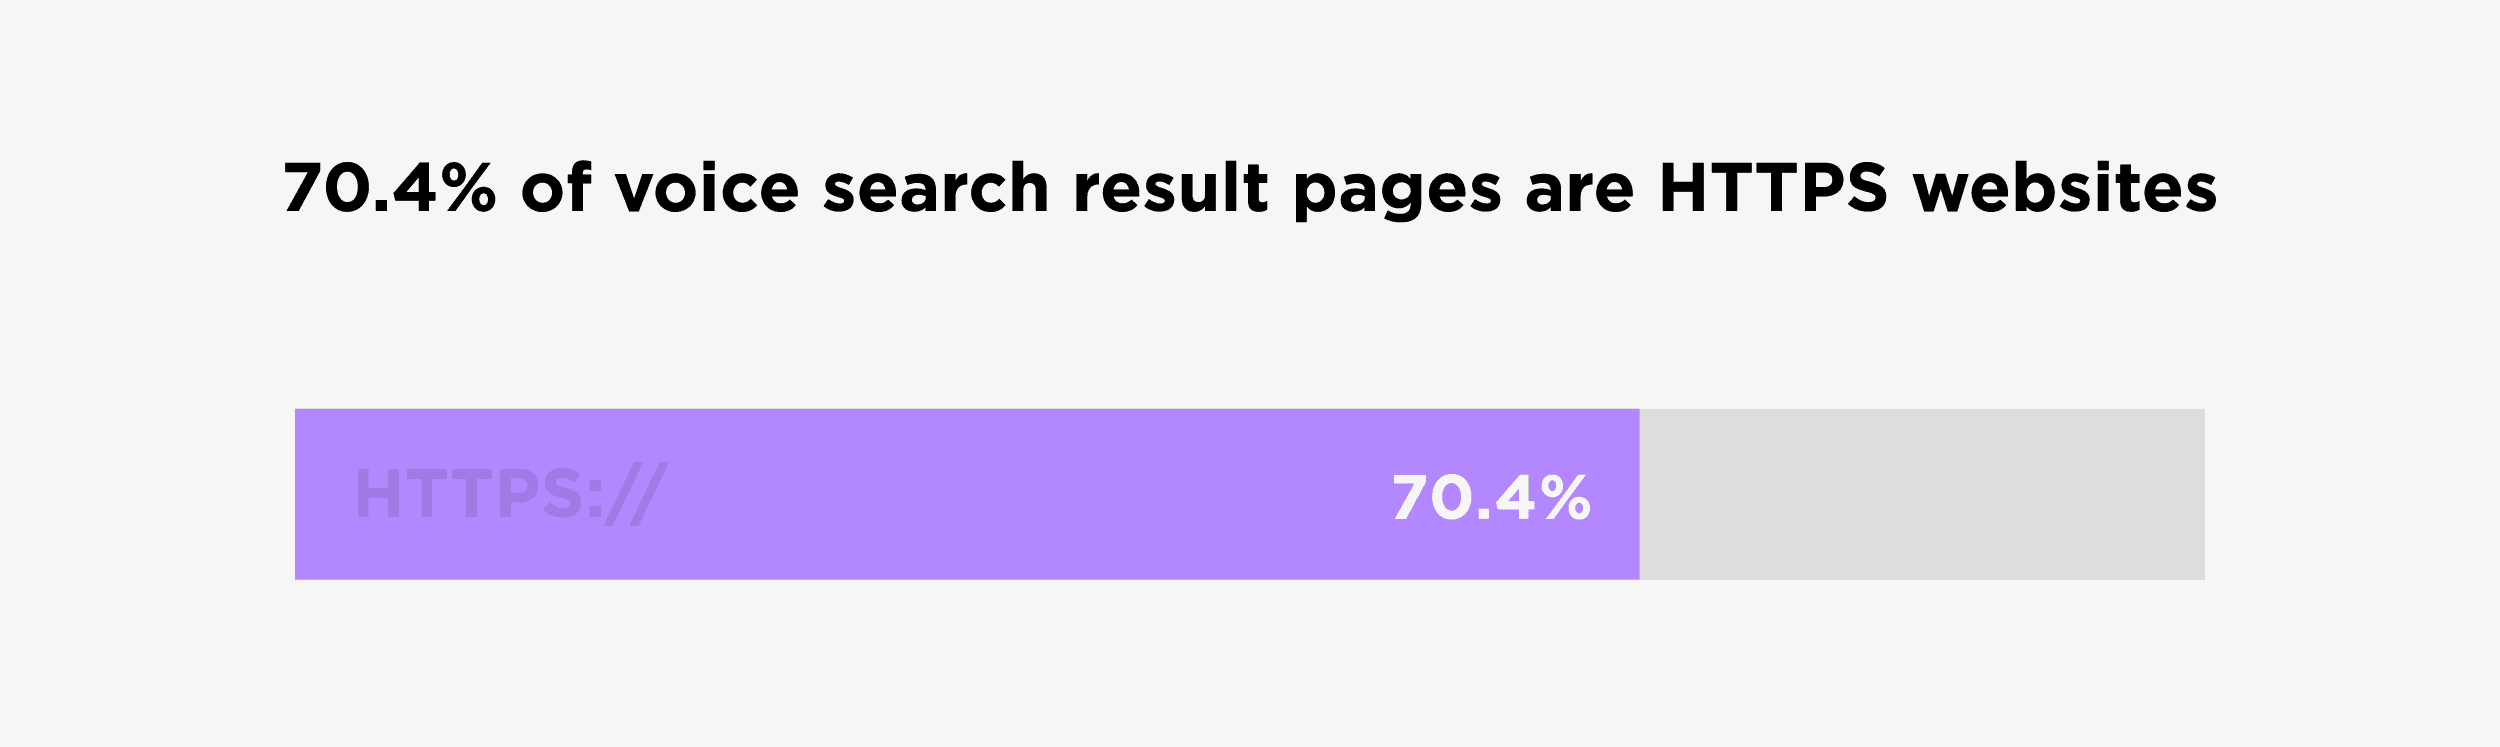 70.4% of voice search result pages are HTTPS websites